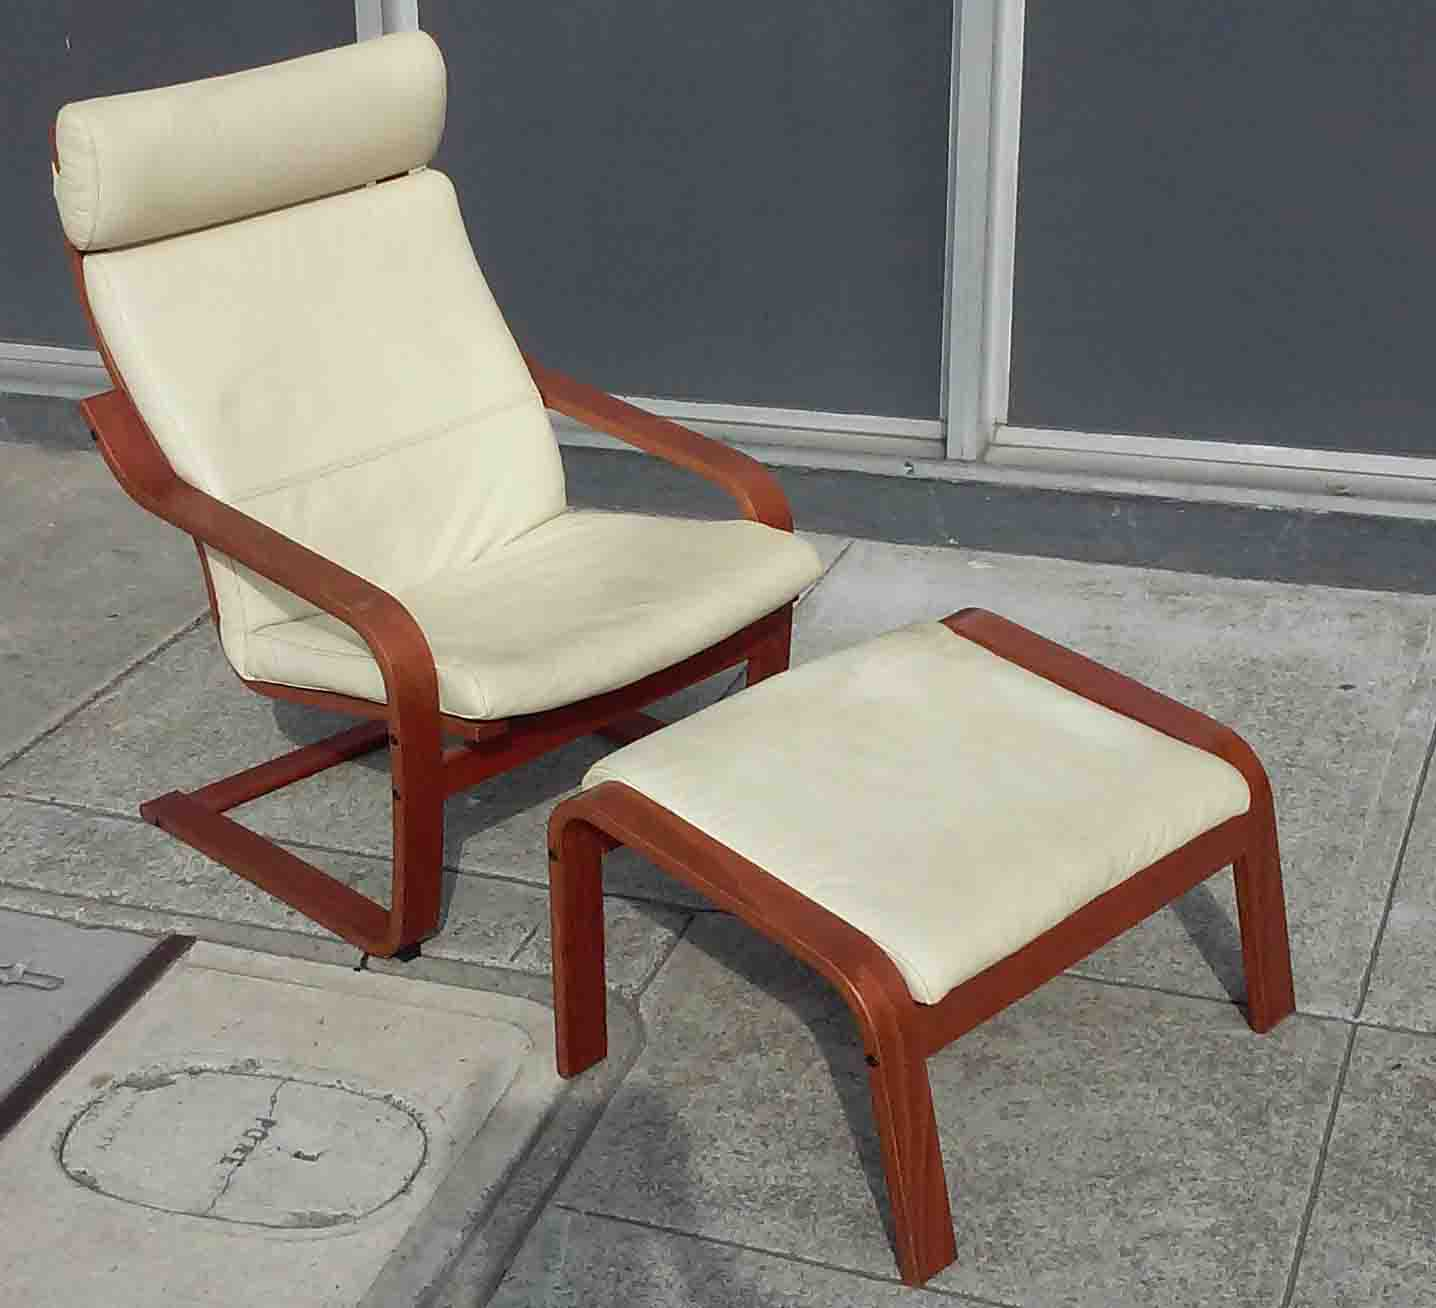 Ikea Trones Cipősszekreny Eladó ~ UHURU FURNITURE & COLLECTIBLES SOLD Poang Chair with Ottoman  $75